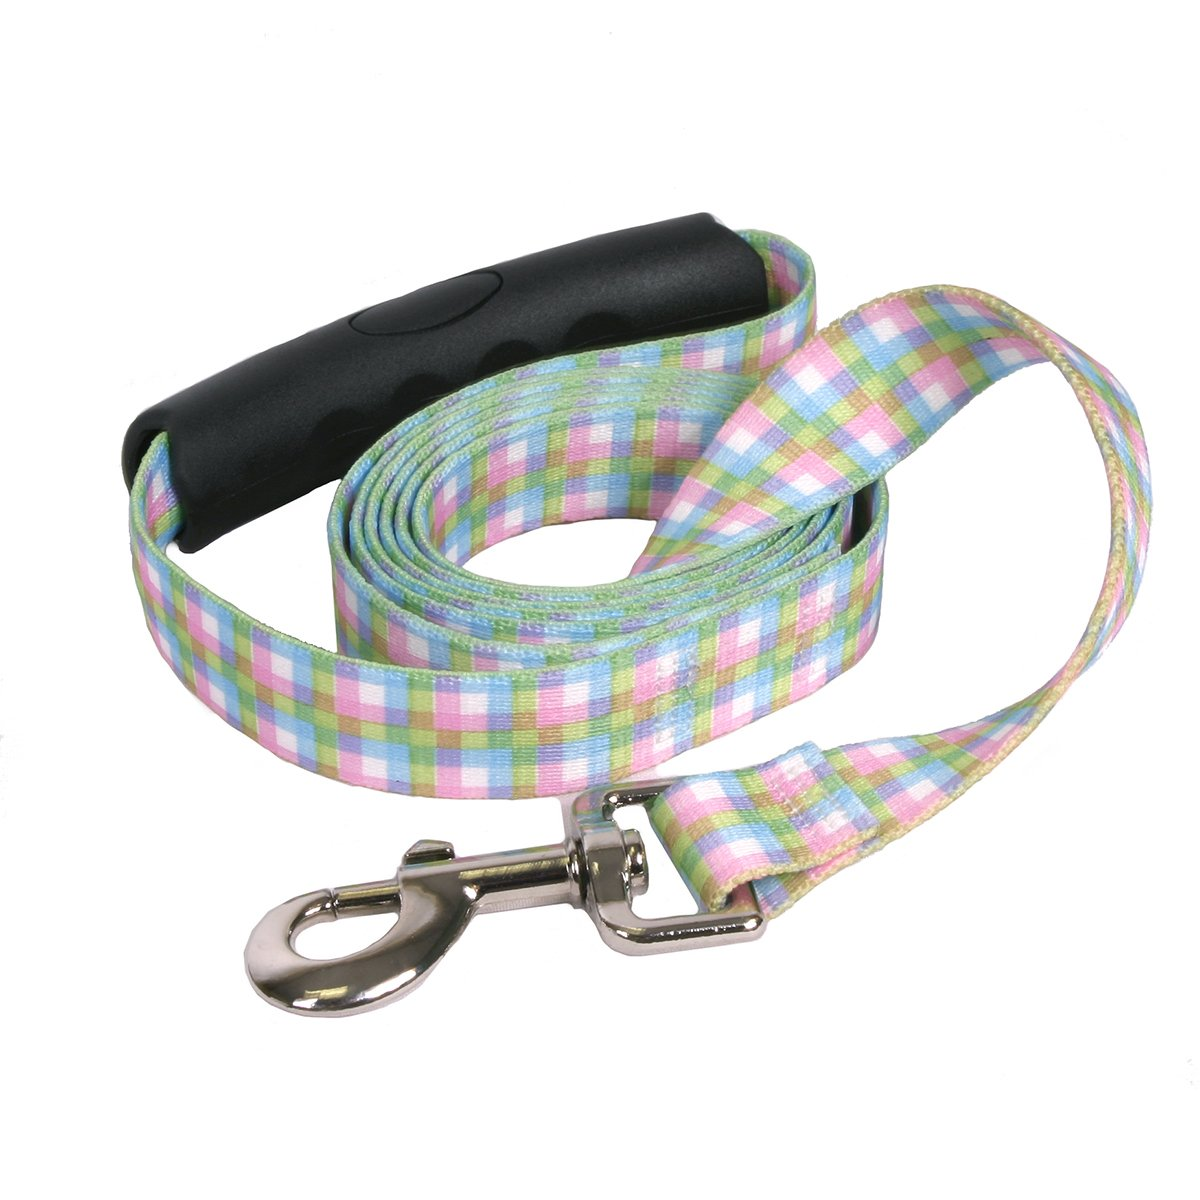 Yellow Dog Design Southern Dawg Gingham Multi Plaid Dog Leash with Comfort Grip Handle-Large-1'' and 5' (60'') Made in The USA